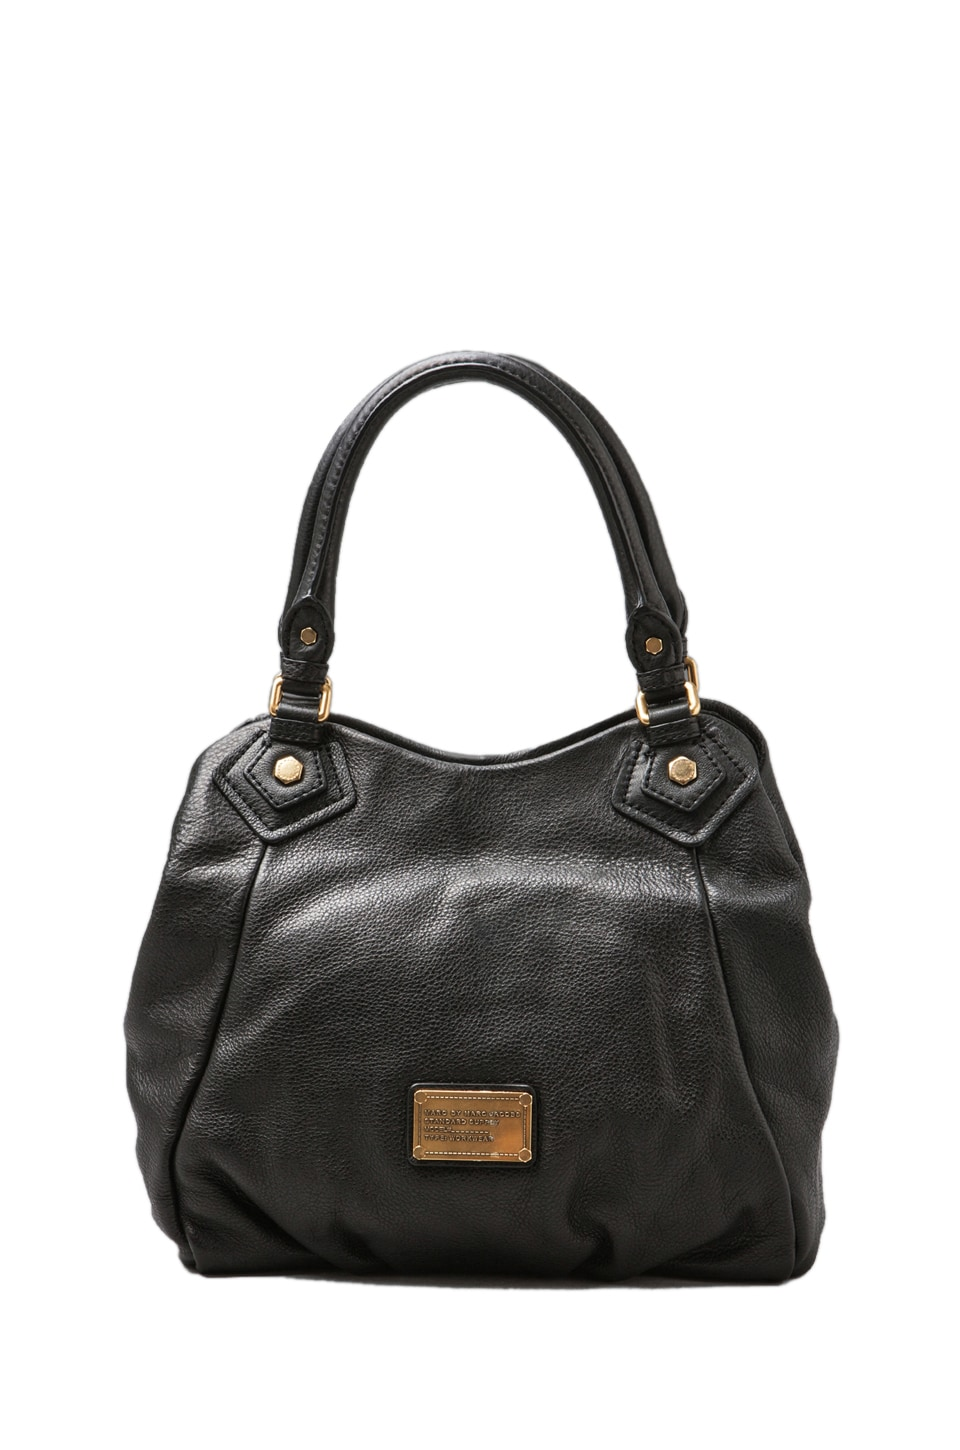 Marc by Marc Jacobs Classic Q Fran Handbag in Black